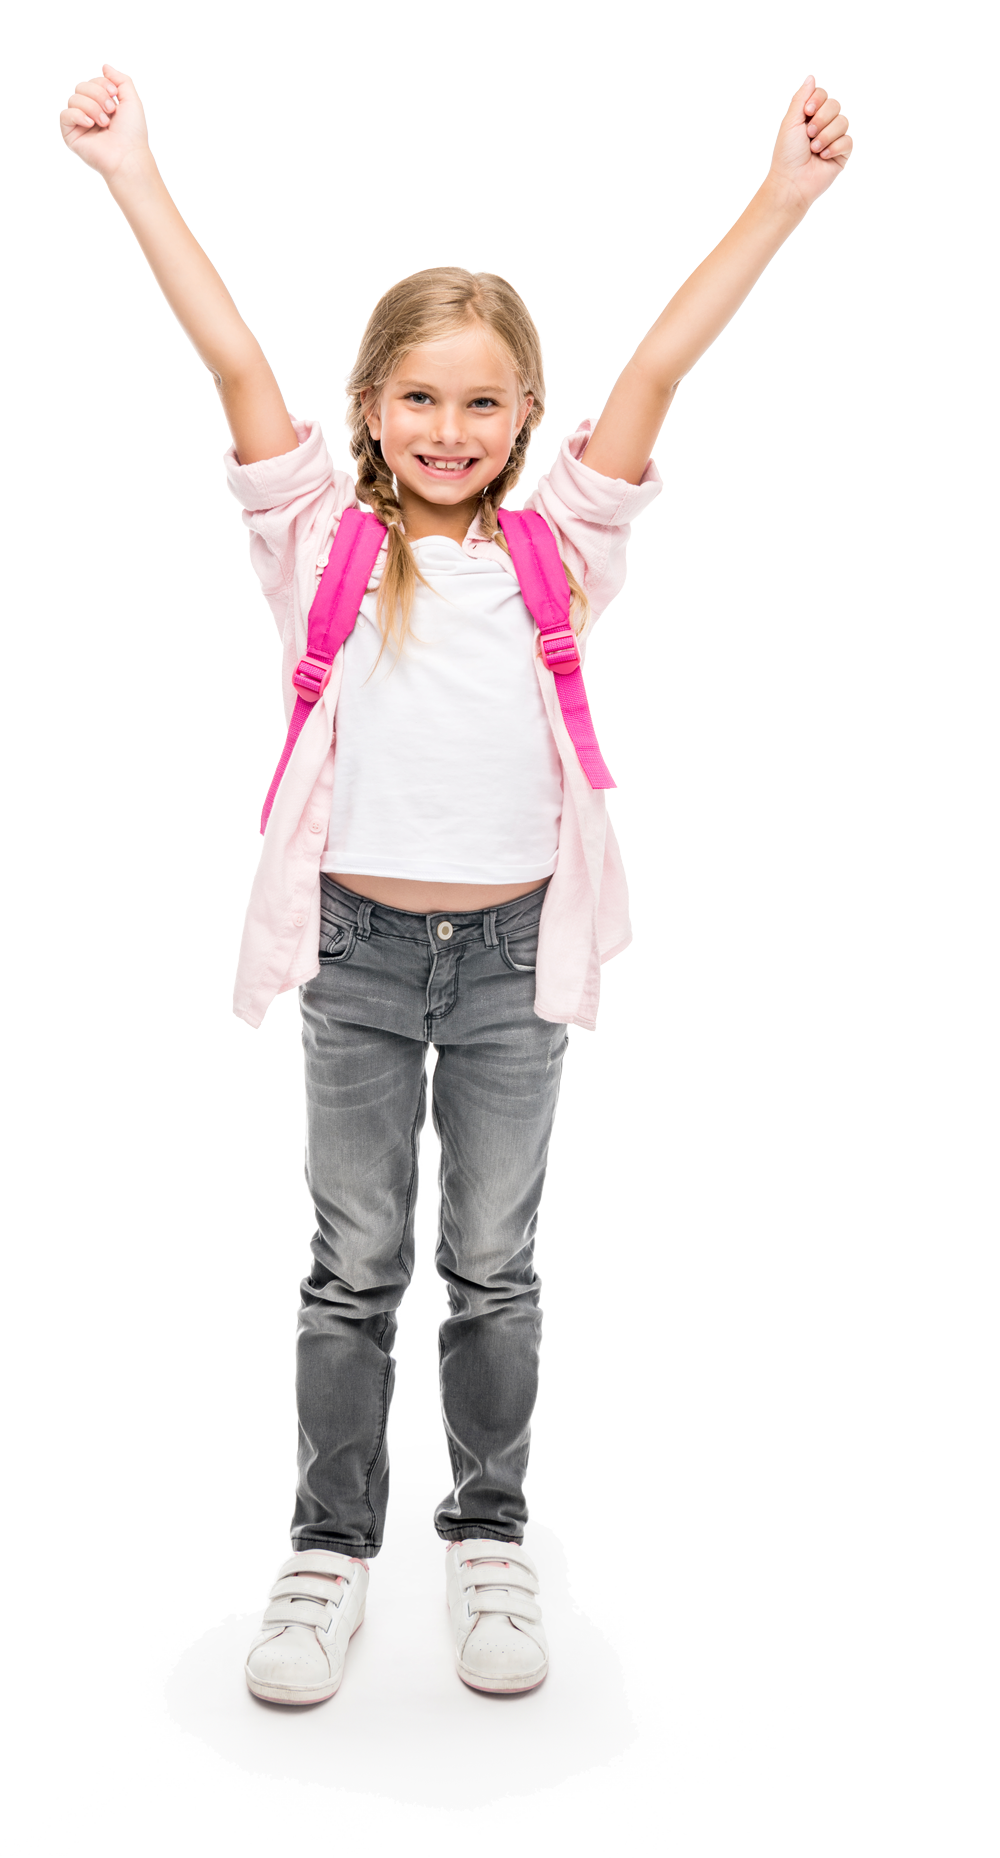 Child with Hands in the Air and Rucksack